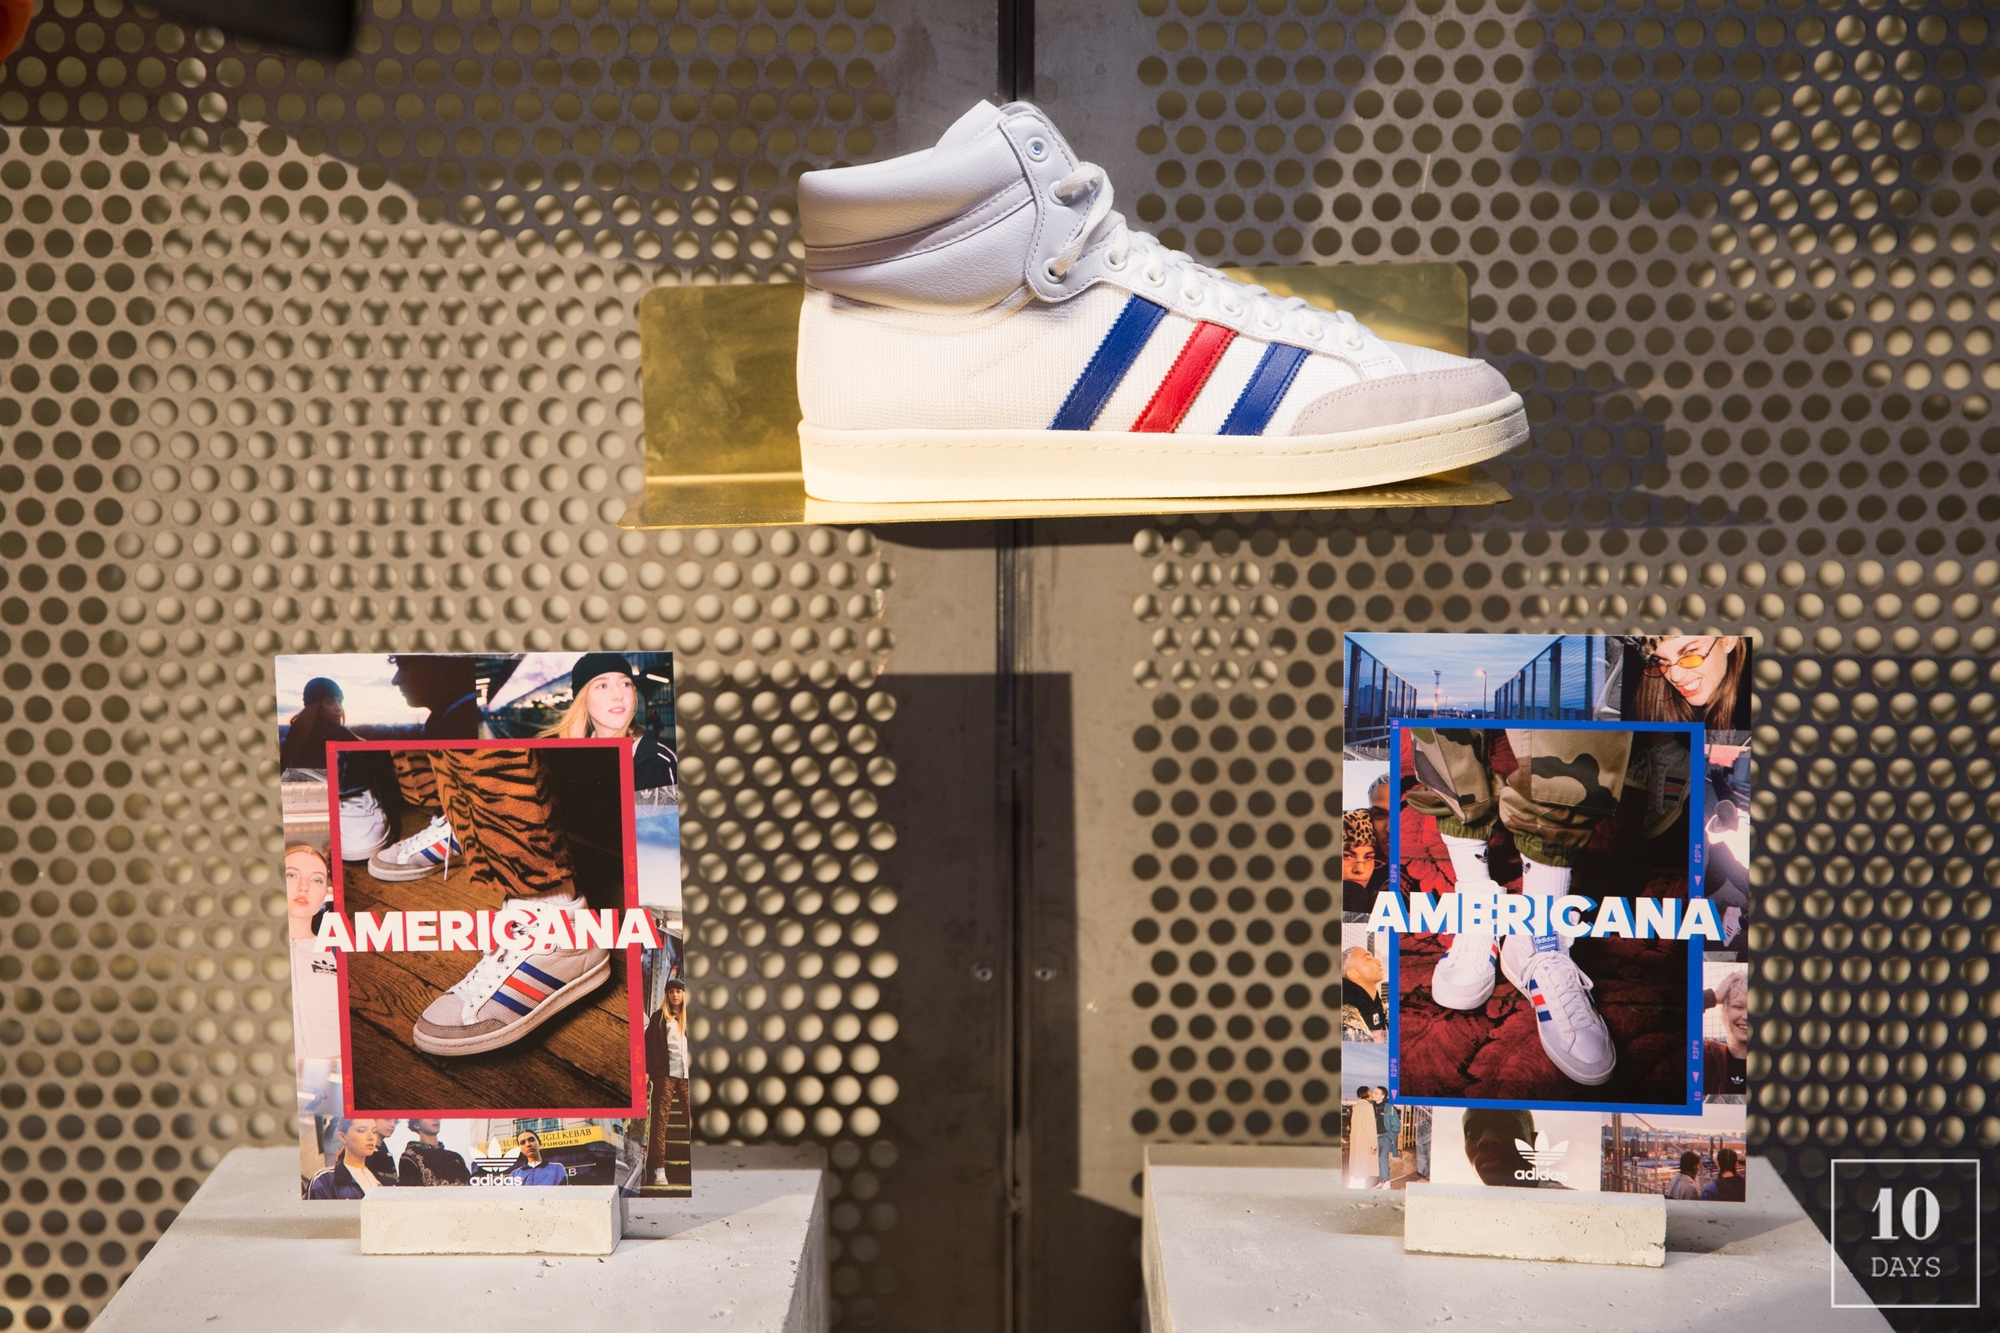 ADIDAS AMERICANA LAUNCH PARTY AT 21BLANCHE